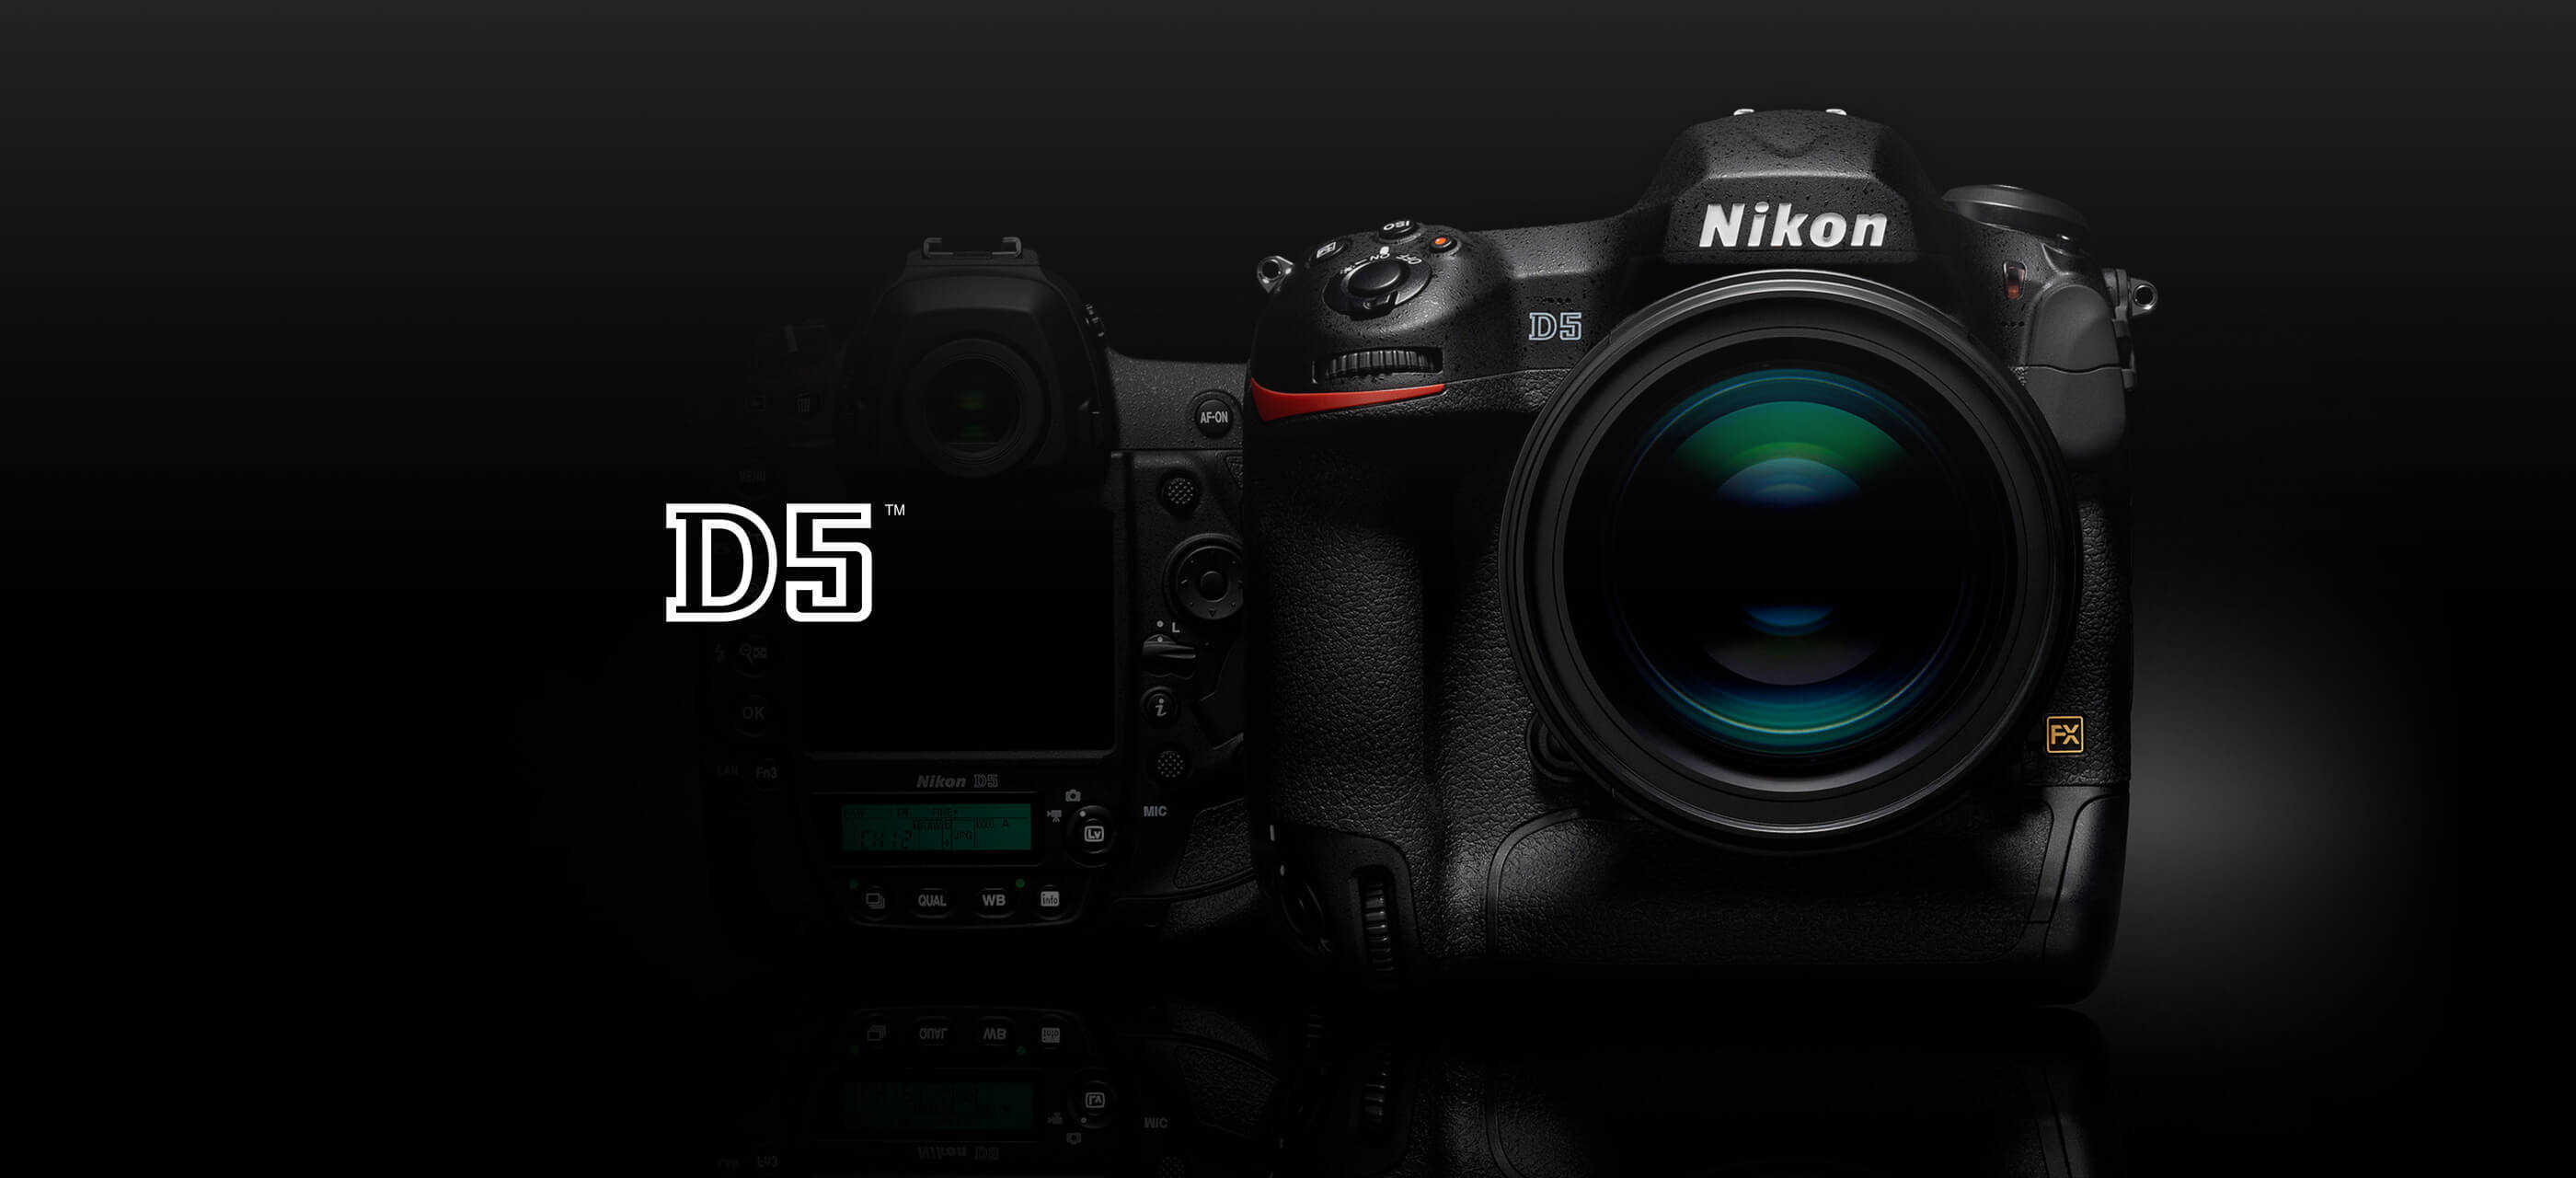 Nikon D5 Professional Dslr With 4k Uhd Video Amp More